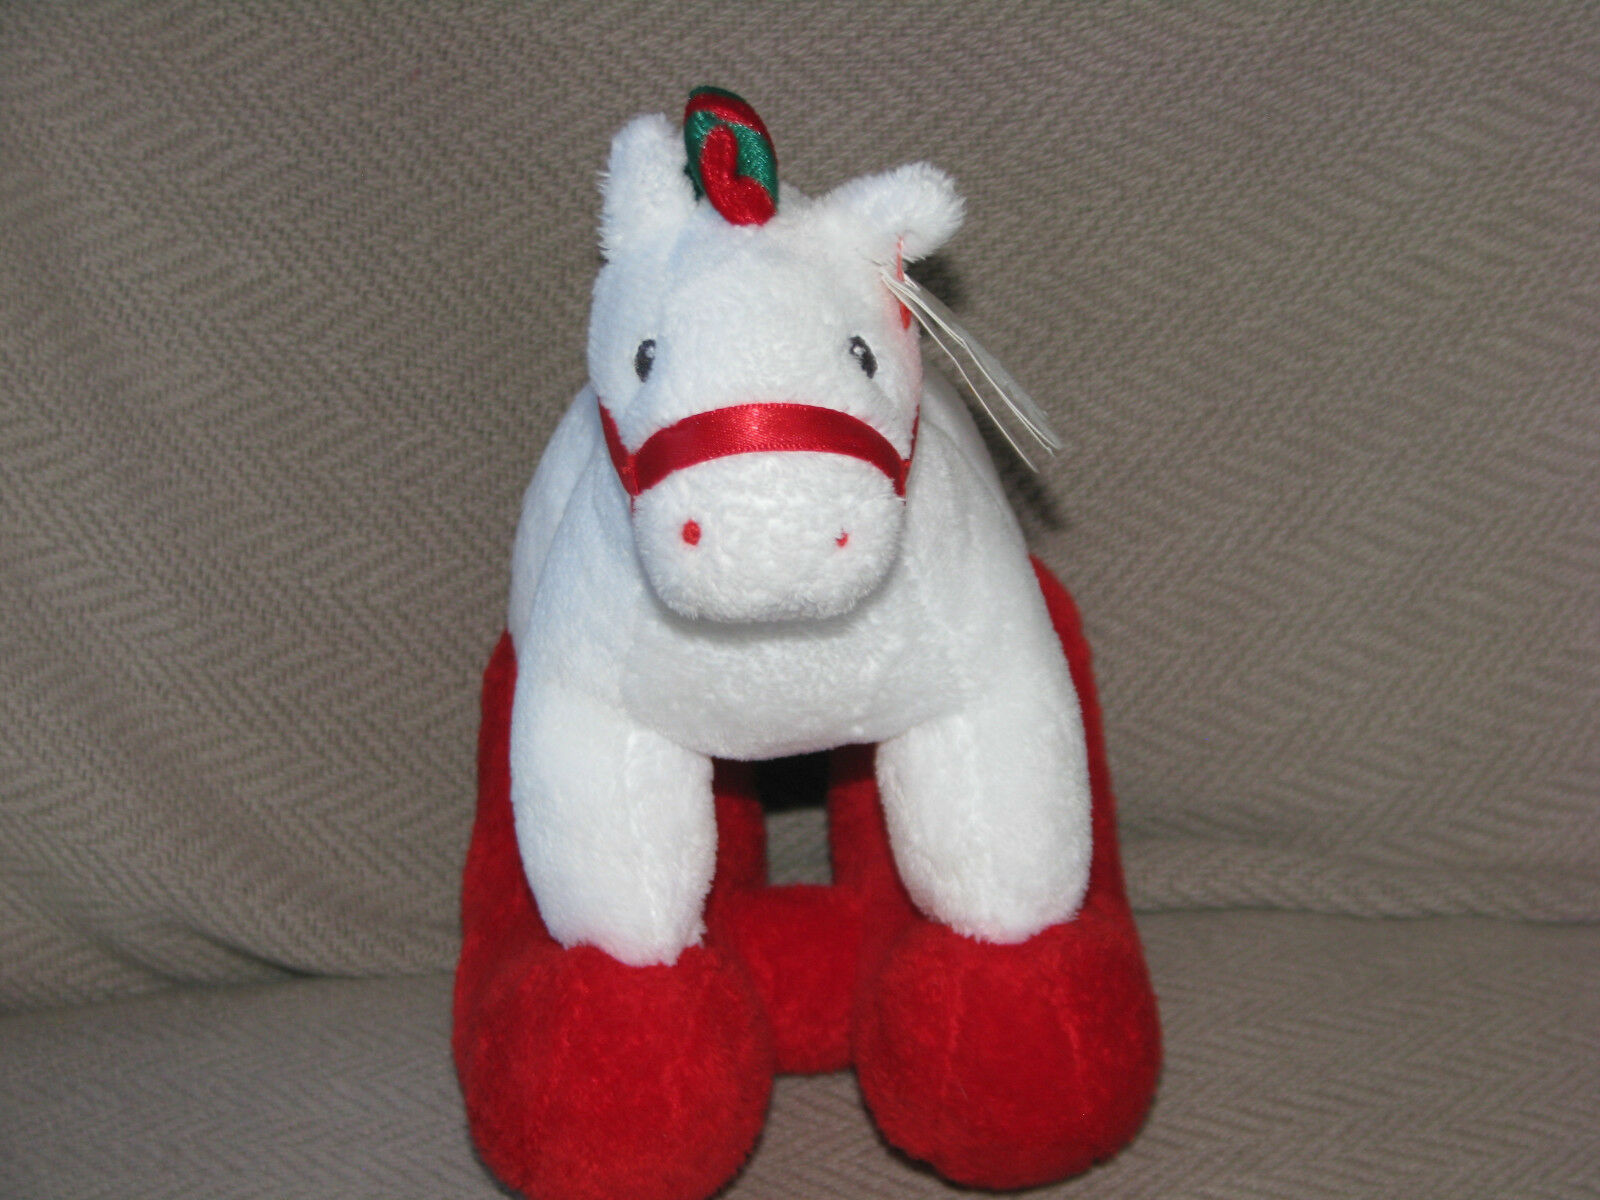 Primary image for TY PRETTY PONY ROCKING HORSE STUFFED PLUSH WHITE RED GREEN XMAS 2006 NEW